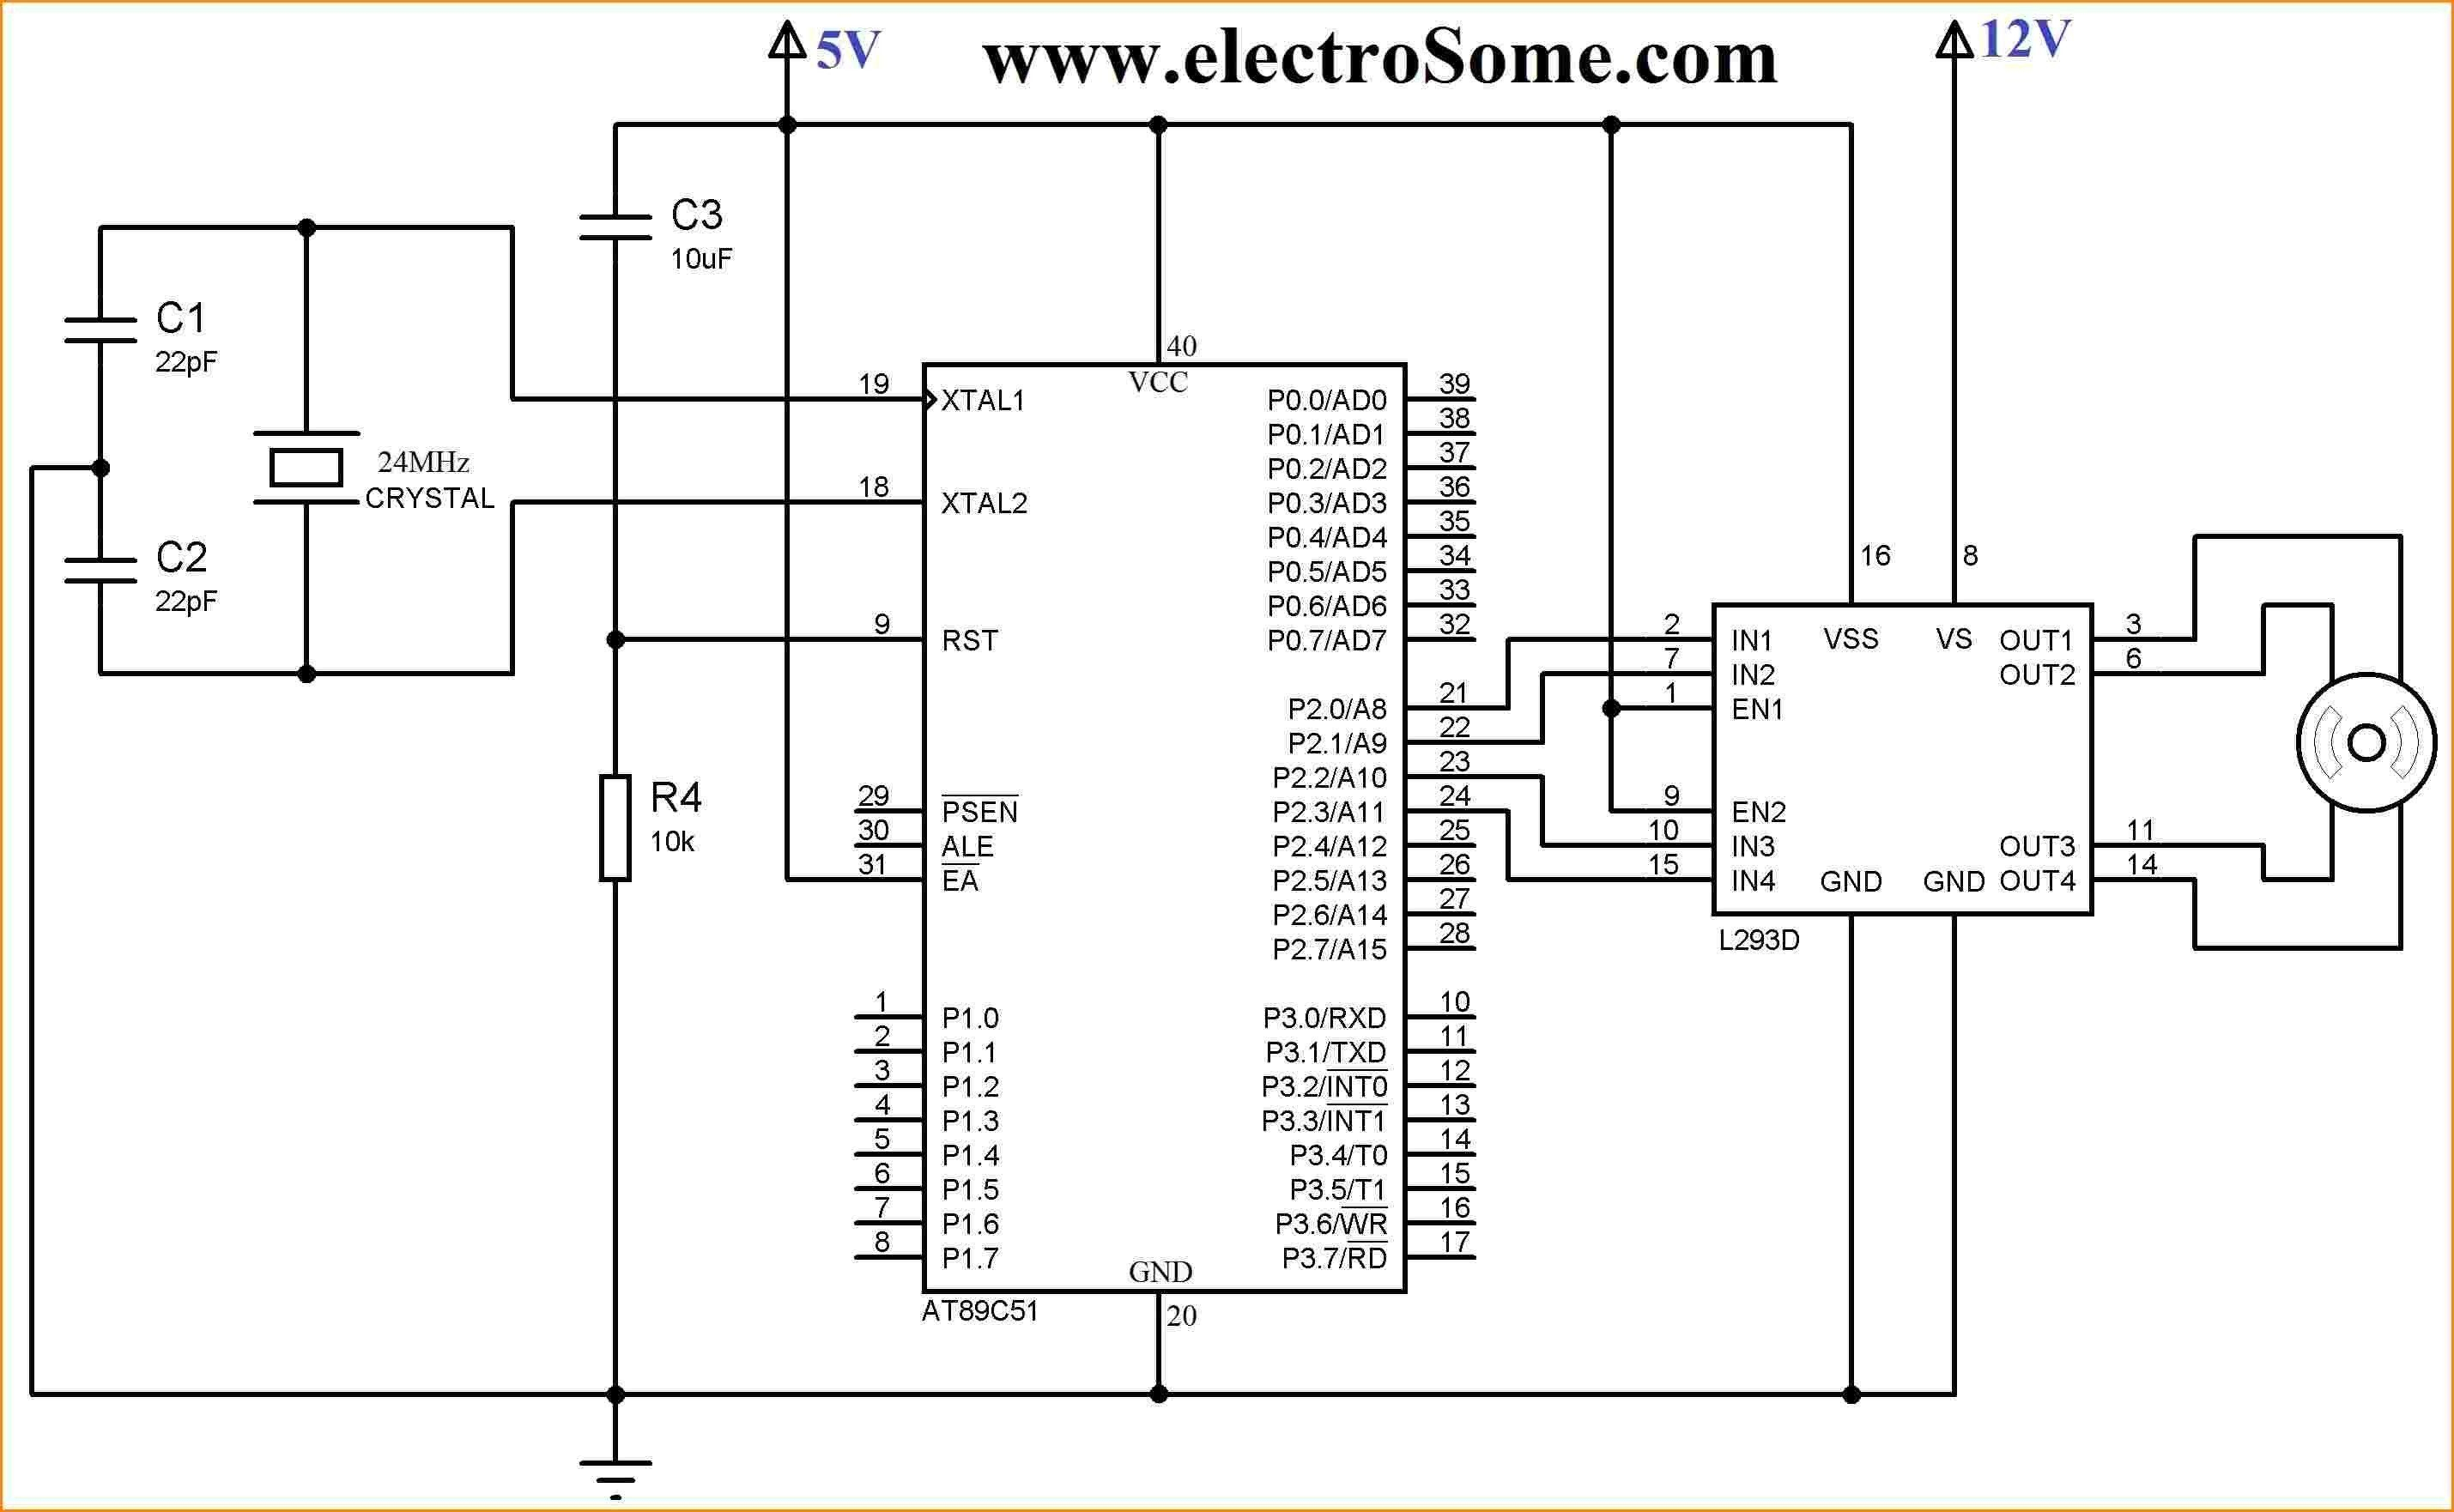 Swann Security Camera Wiring Diagram - Today Wiring Diagram - Swann Security Camera Wiring Diagram